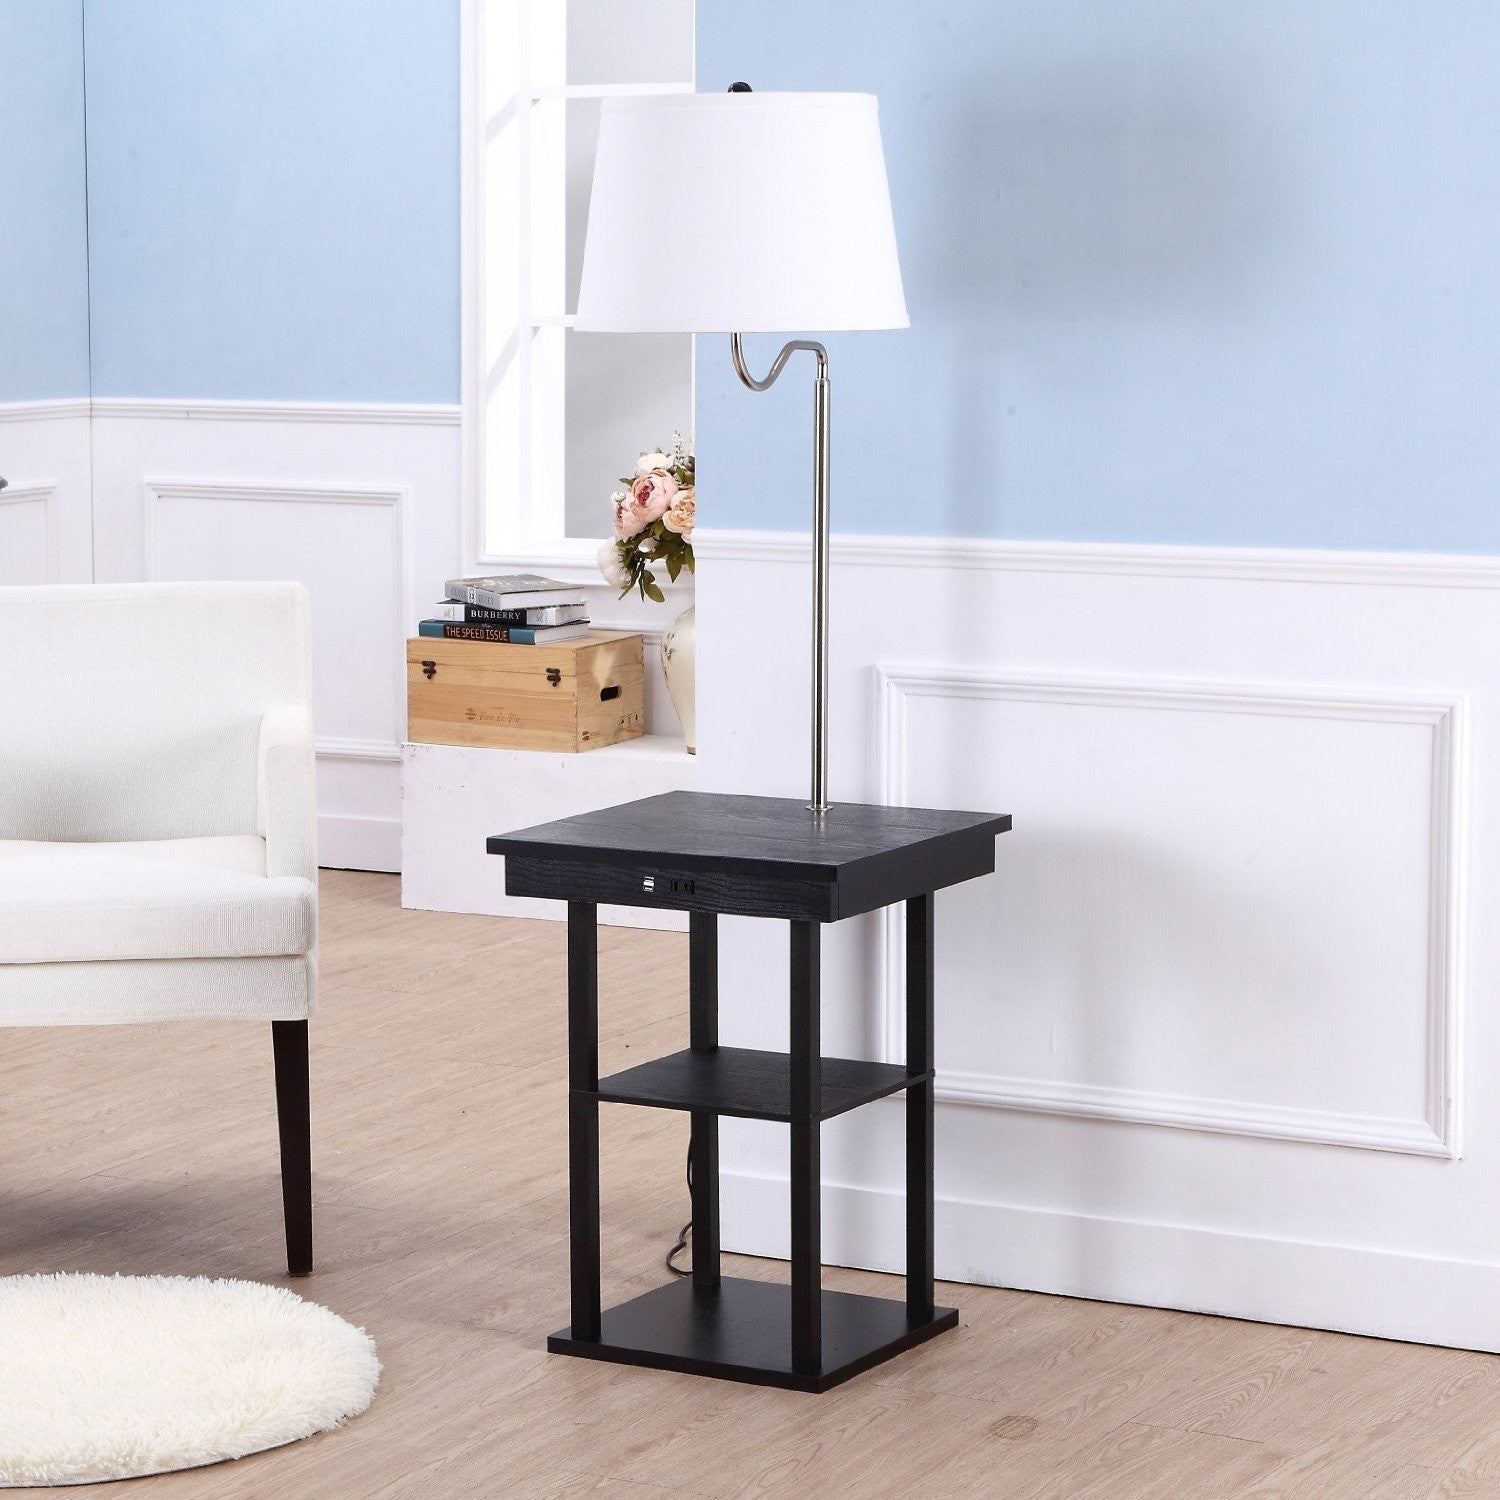 End table with built in lamp - Brightech Store Madison Floor Lamp With Built In Two Tier Black Table With Open Display Space Outfitted With 2 Usb Ports And Us Standard Outlet For